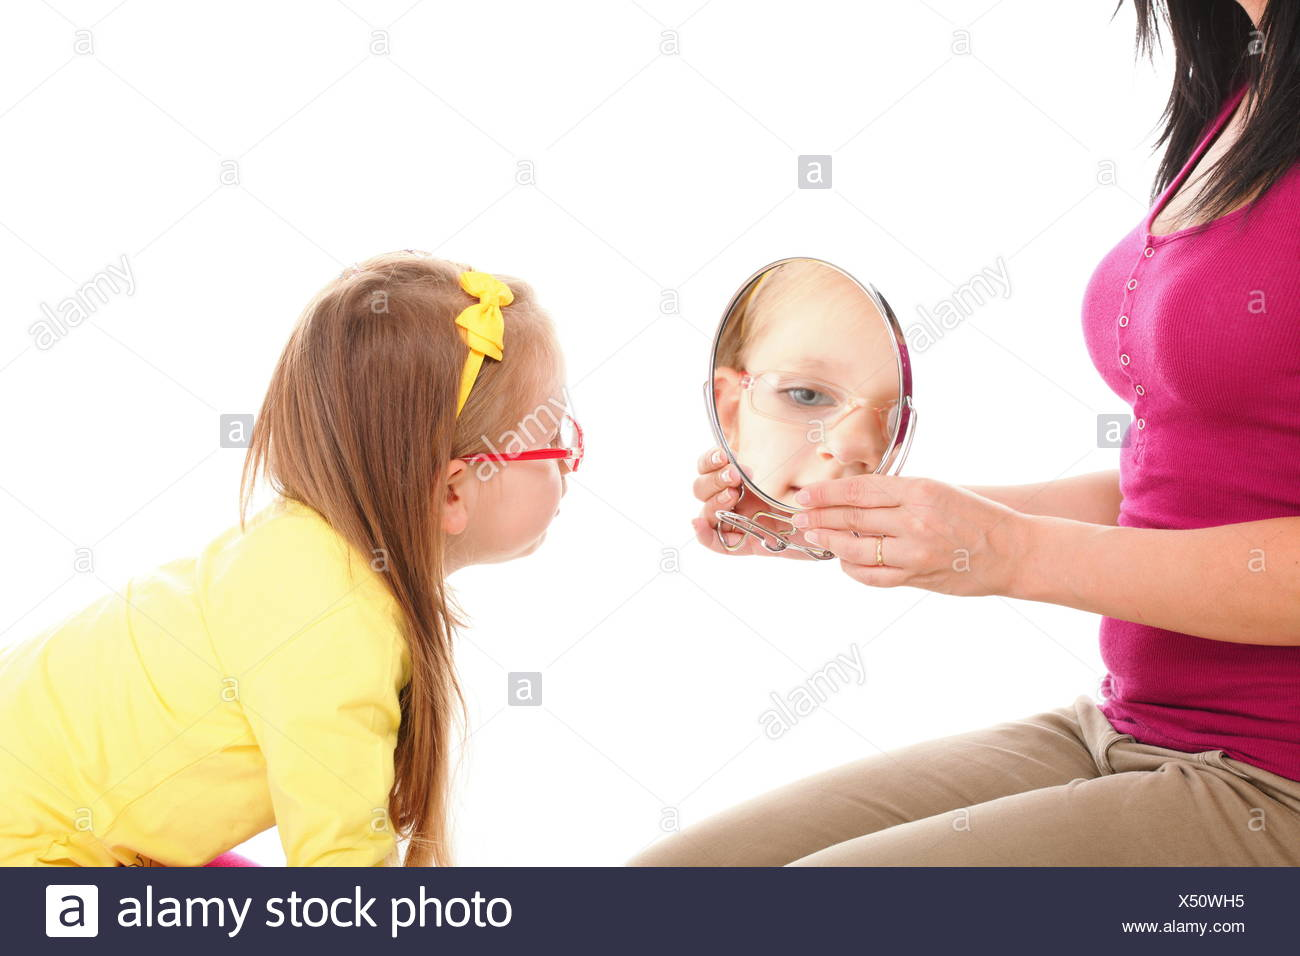 baby girl and mirror mother - Stock Image